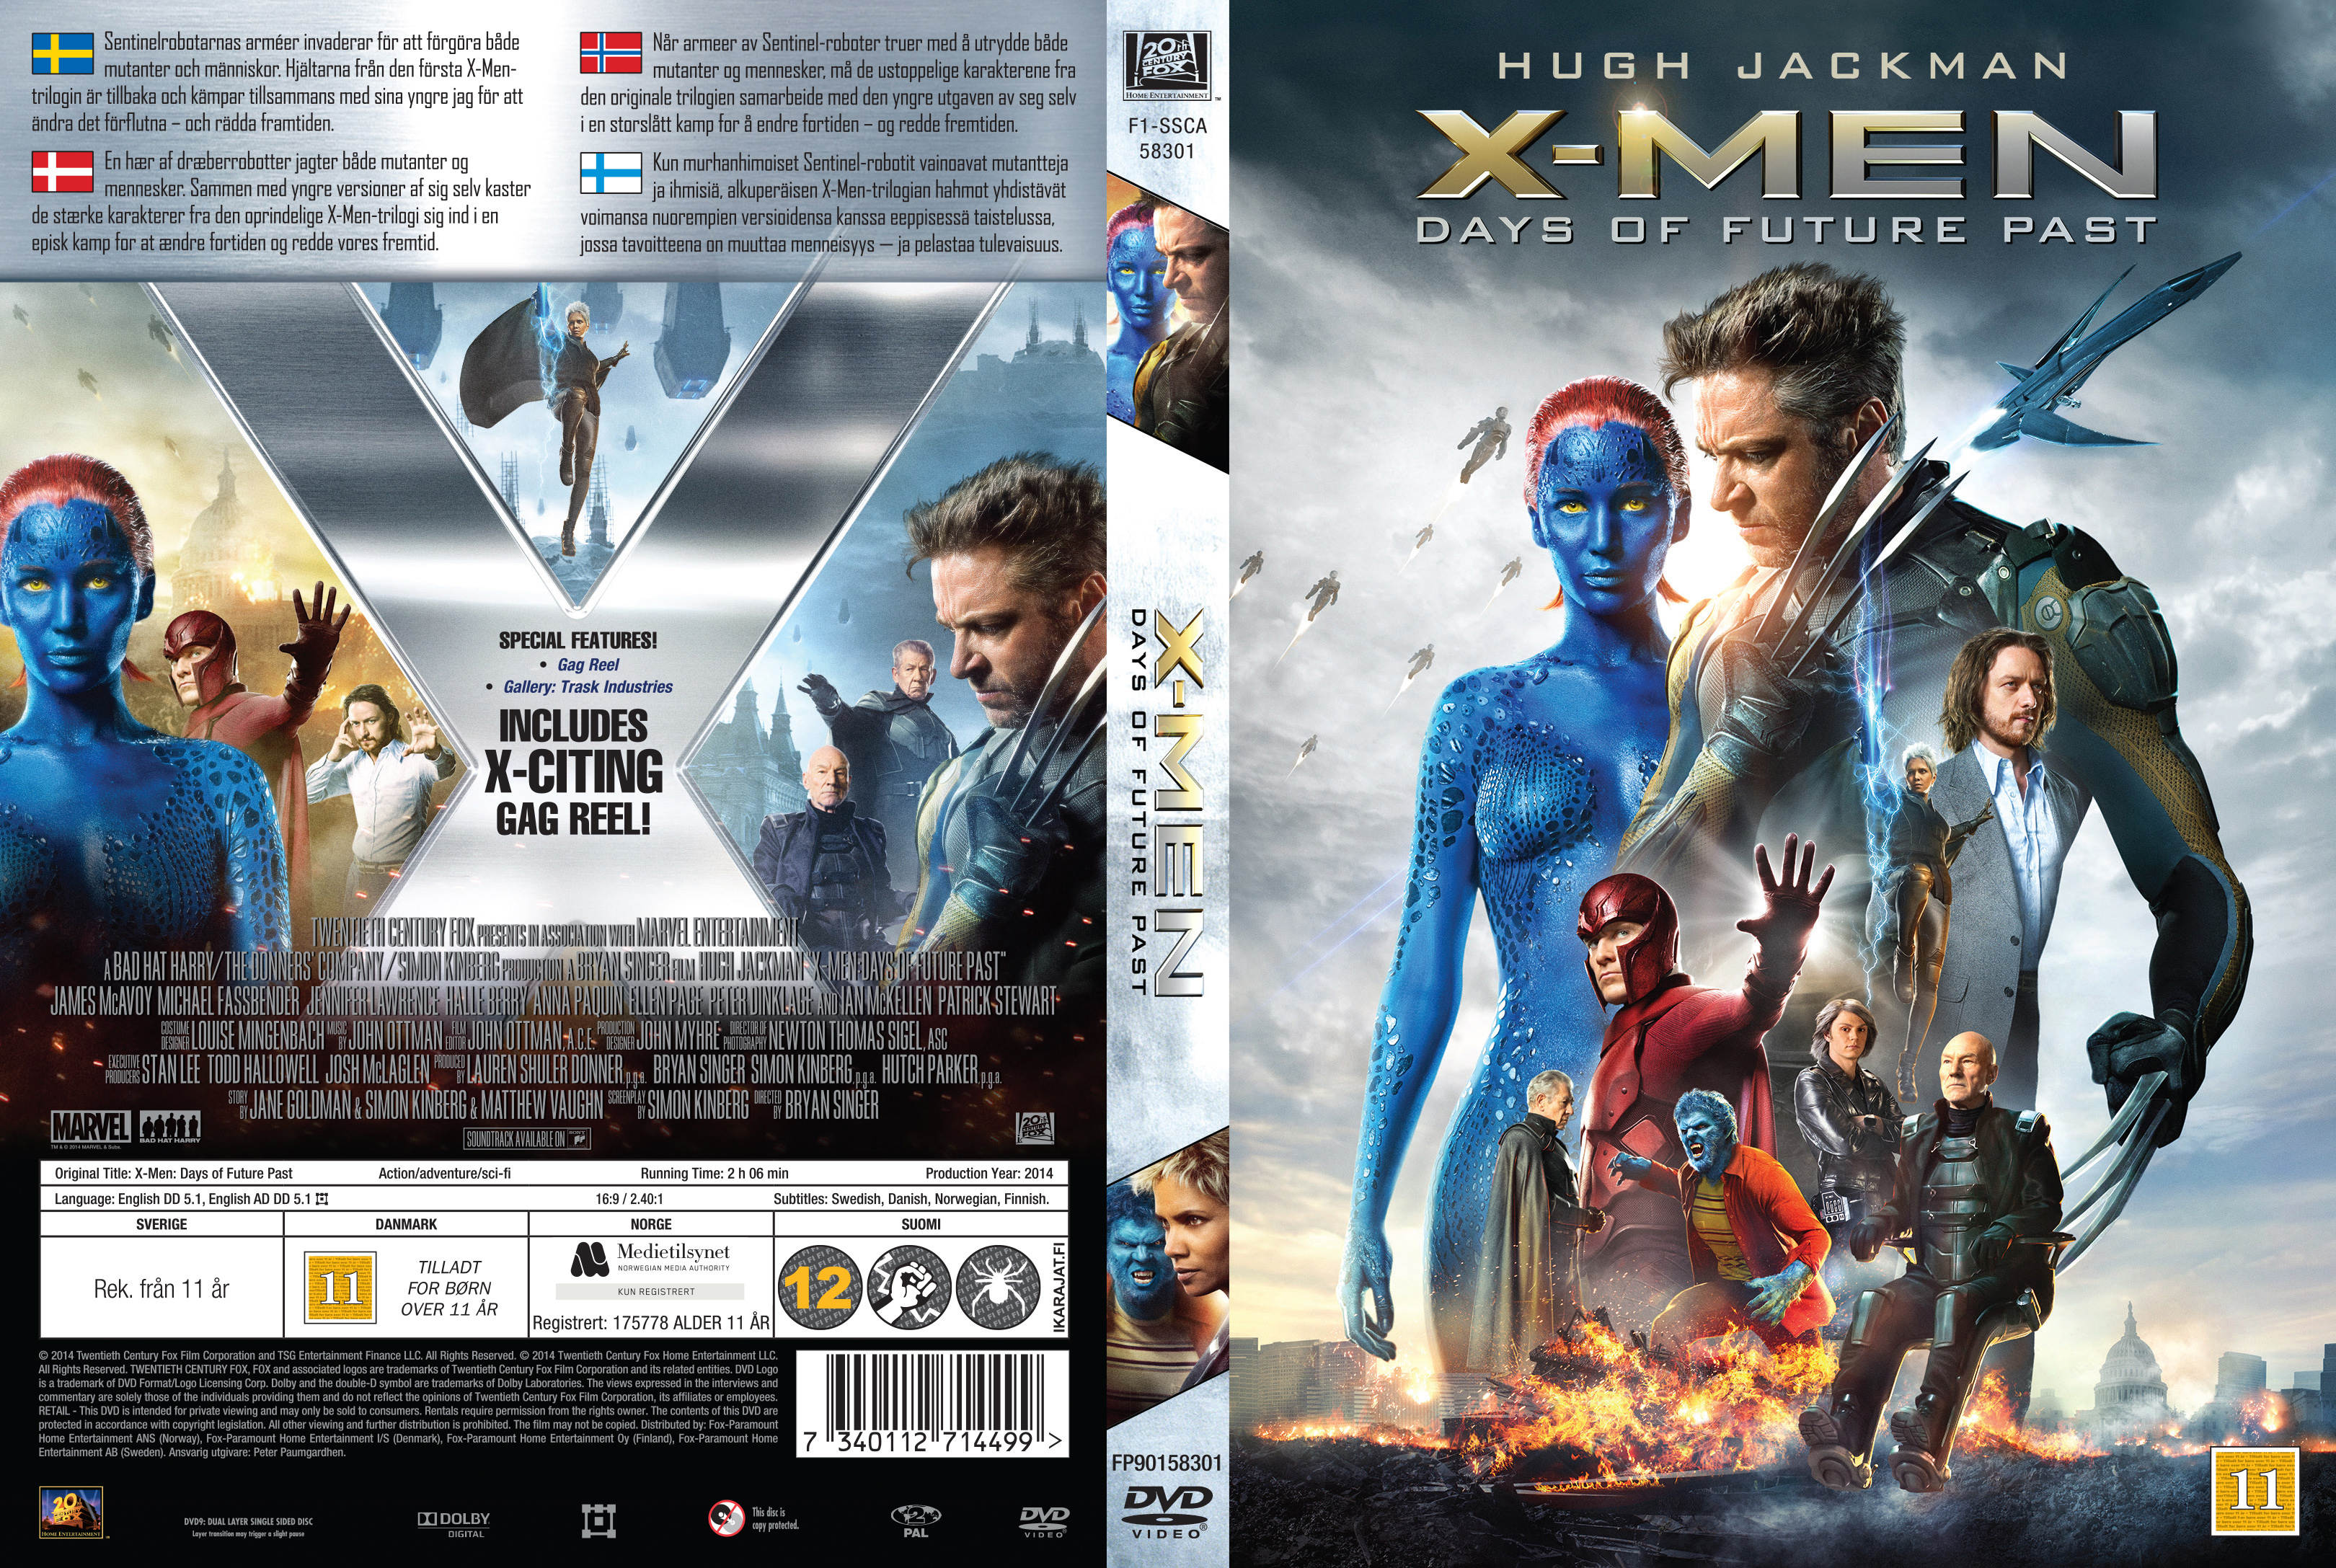 X Men Dvd Cover: Days Of Future Past (Nordic